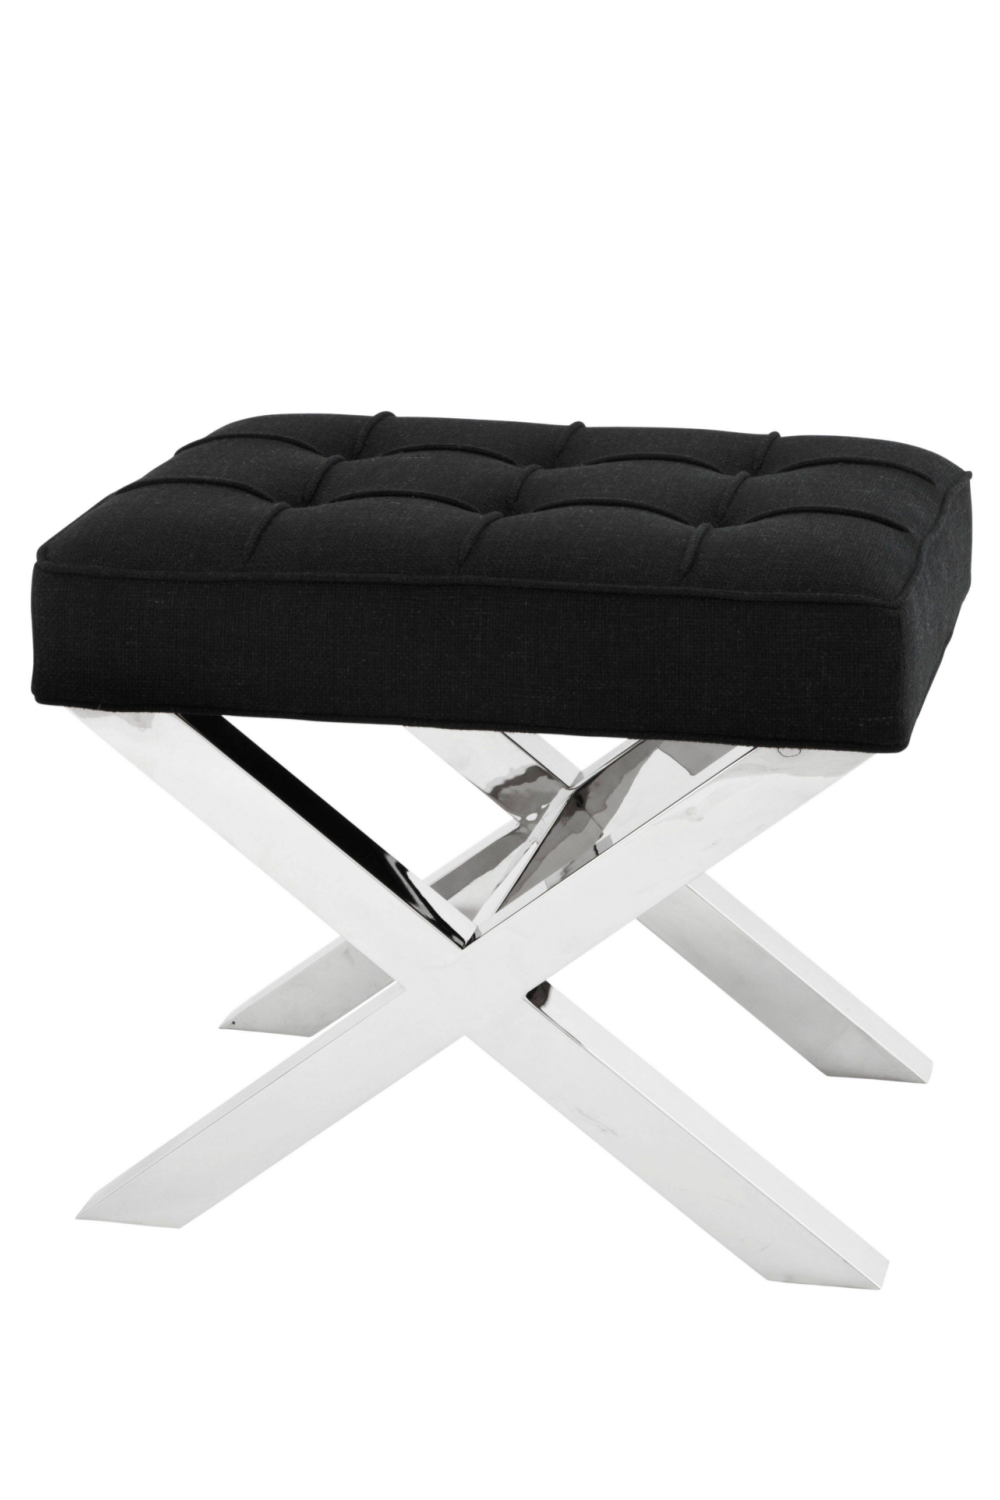 Black Tufted X-Leg Stool | Eichholtz Beekman Place